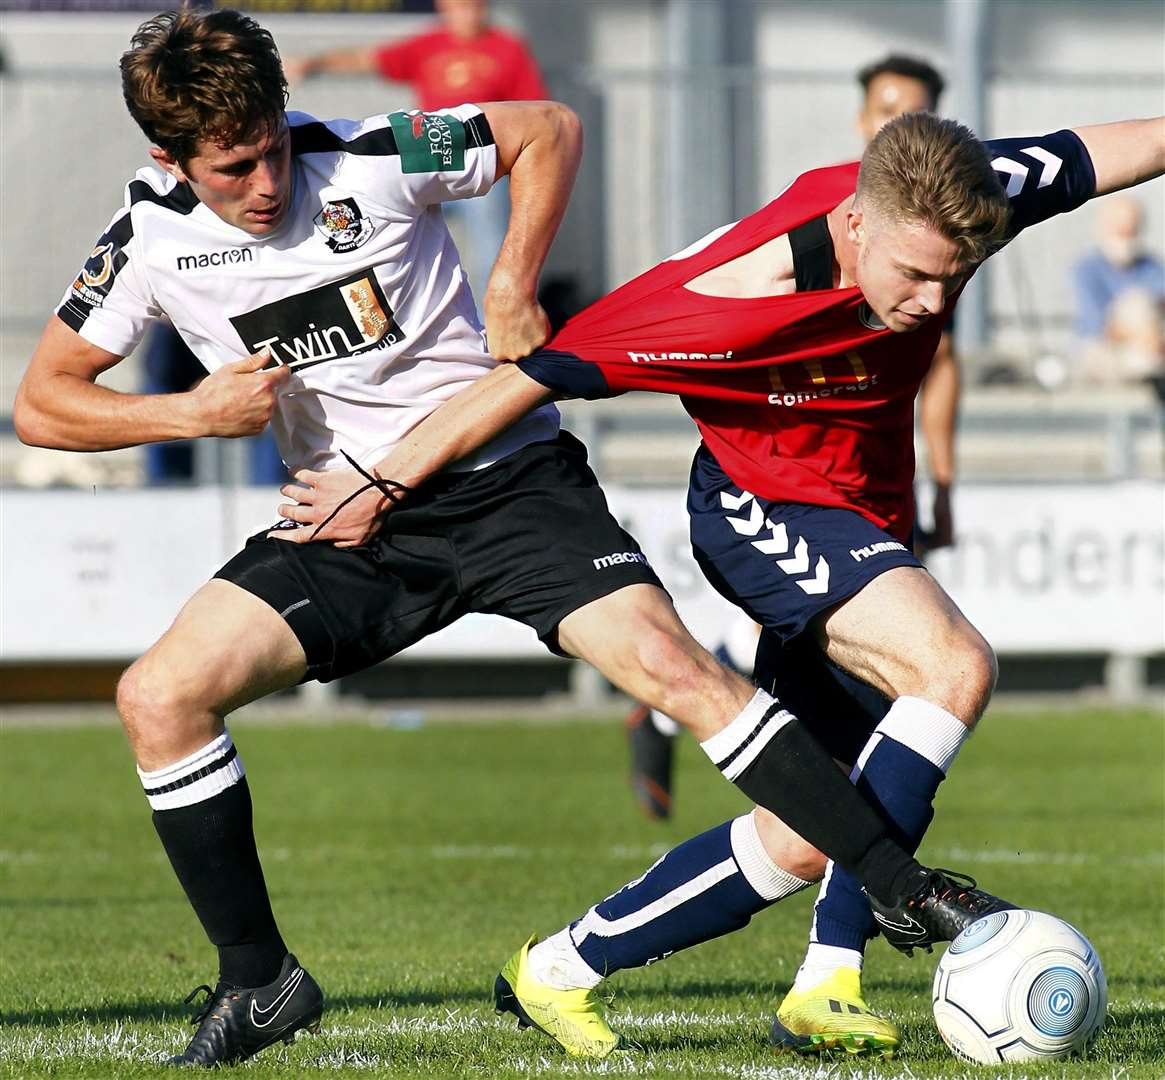 Dartford's Lee Noble battles against Weston on Saturday. Picture: Sean Aidan